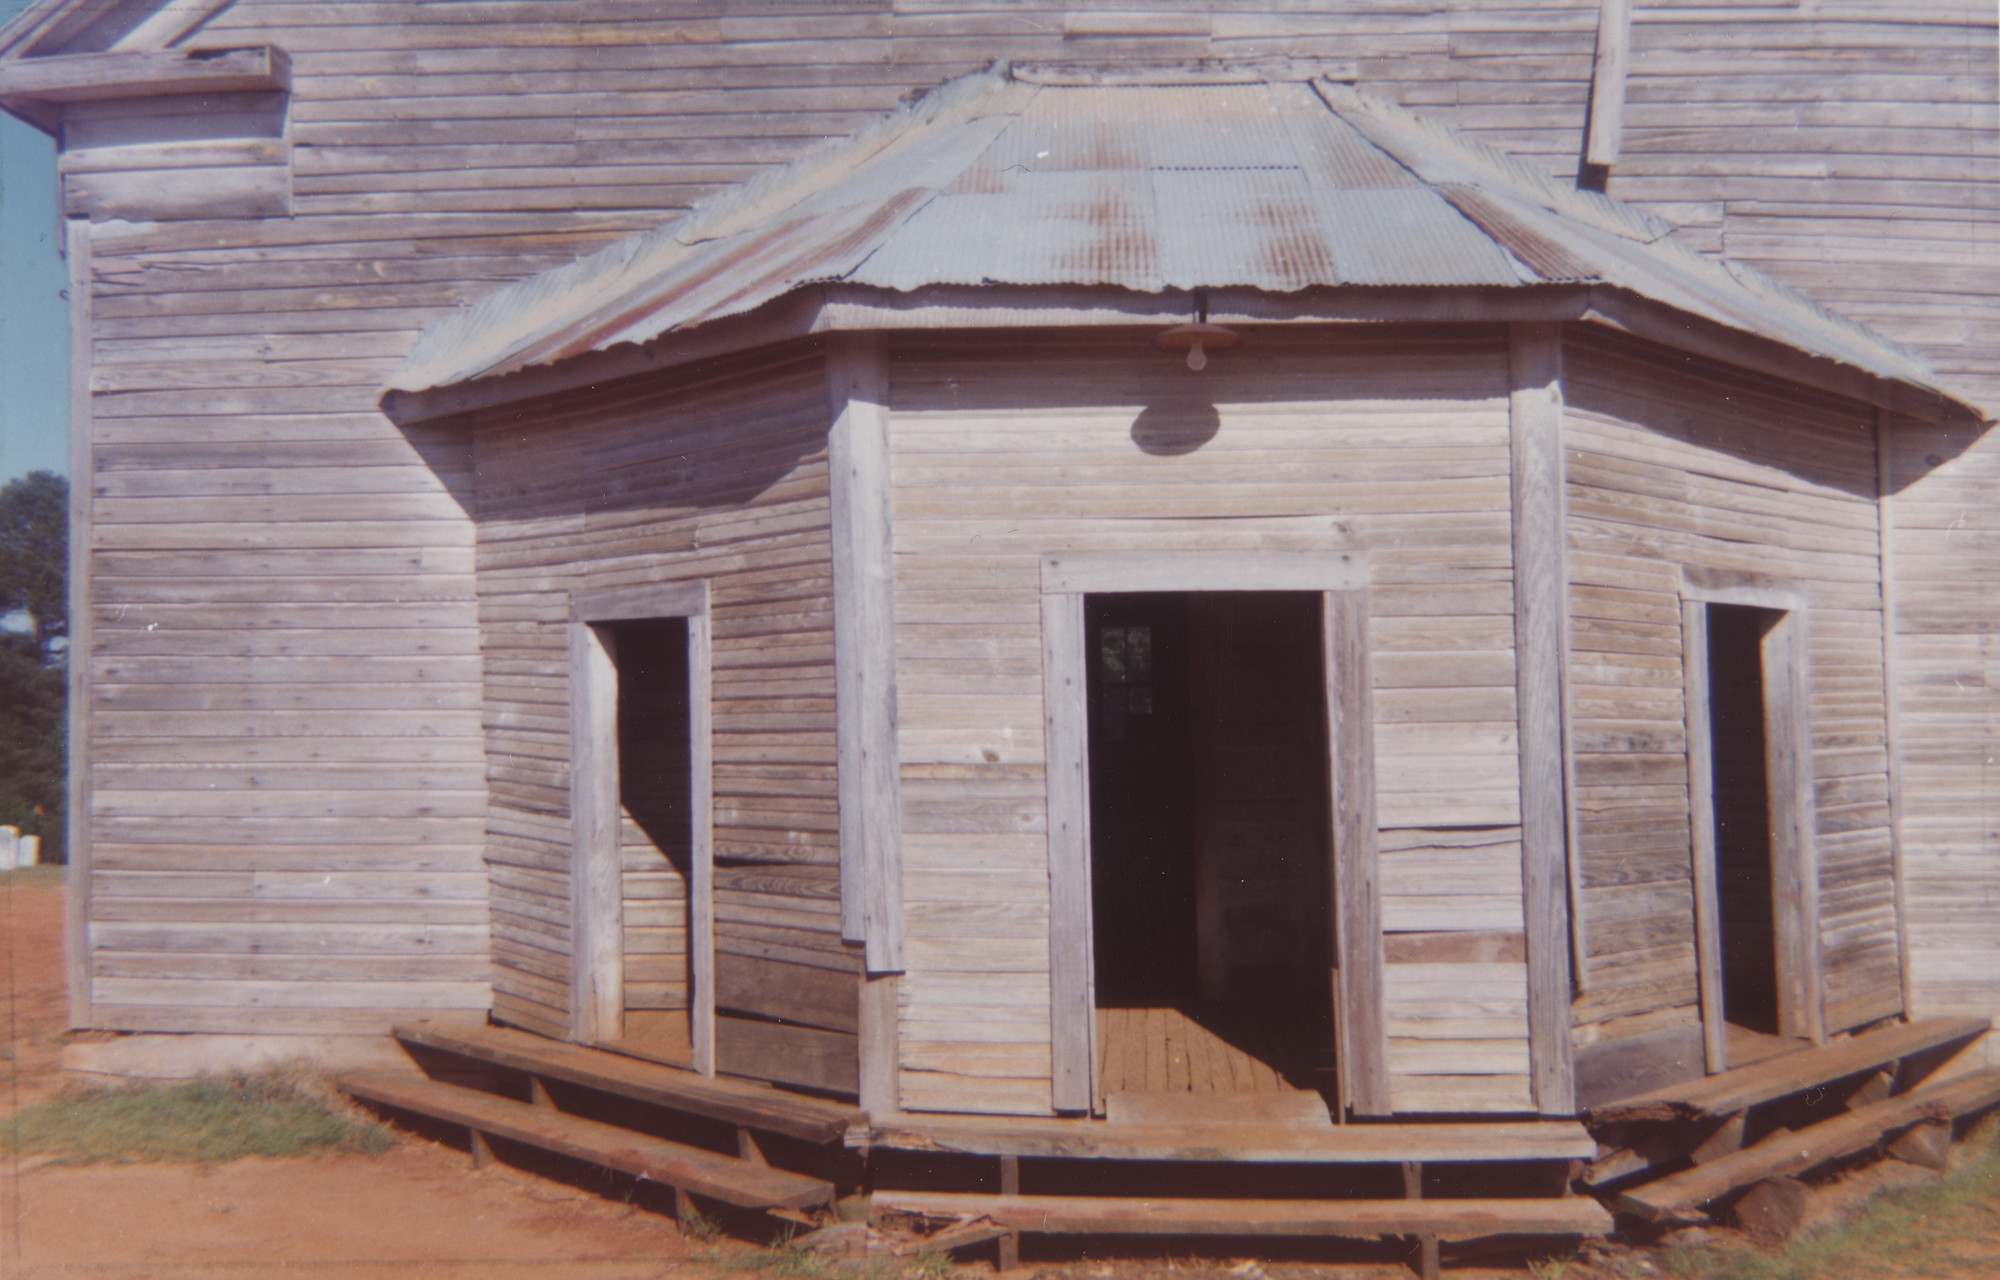 William Christenberry. Church, Havana Alabama. 1964